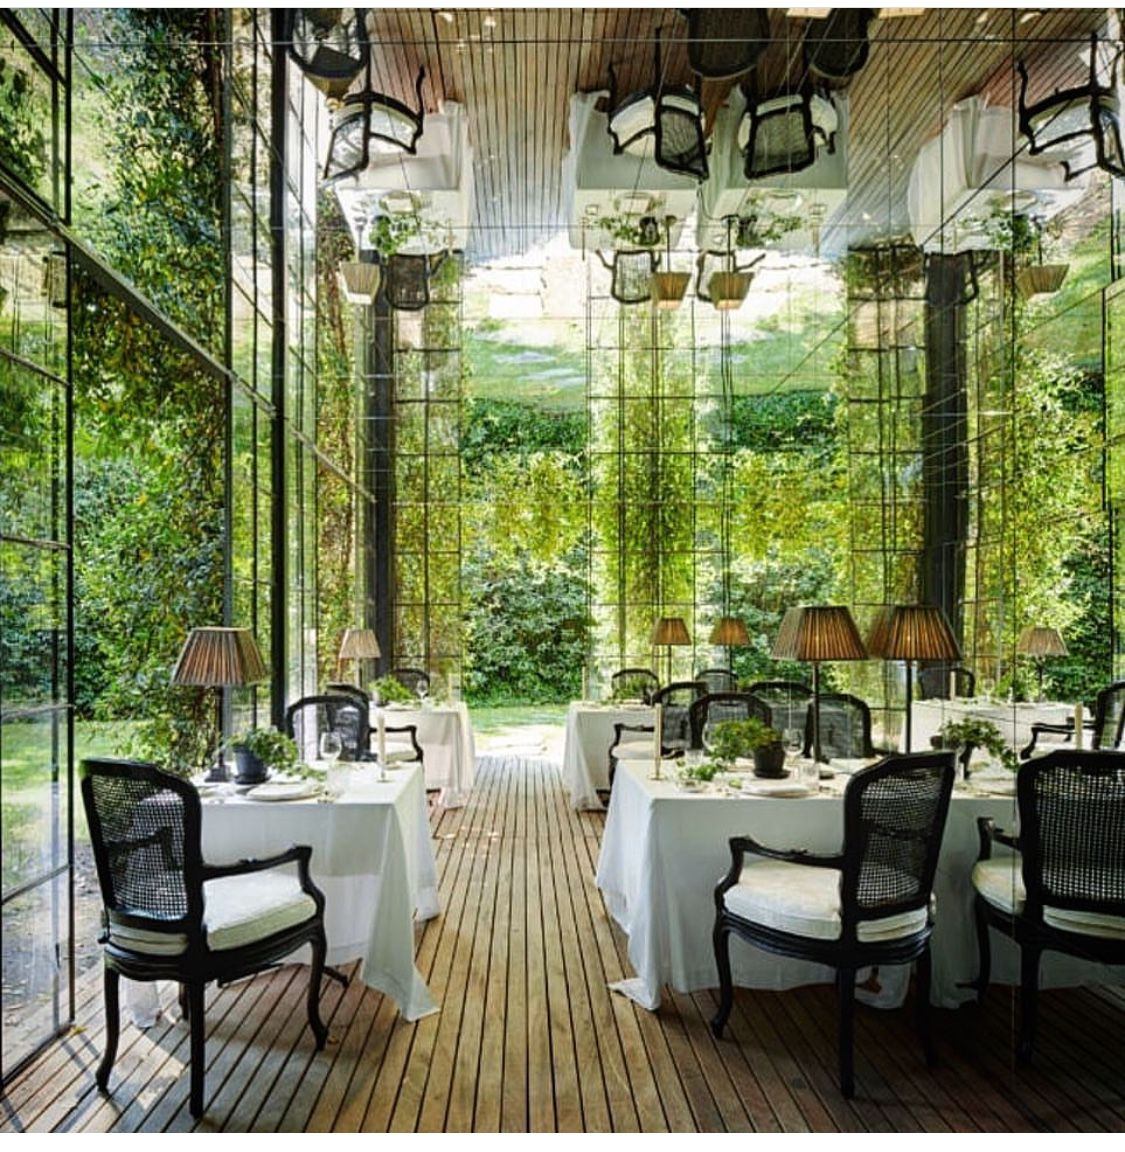 Meisters Hotel Irma Italy With Images Hotel Irma Cafe Design